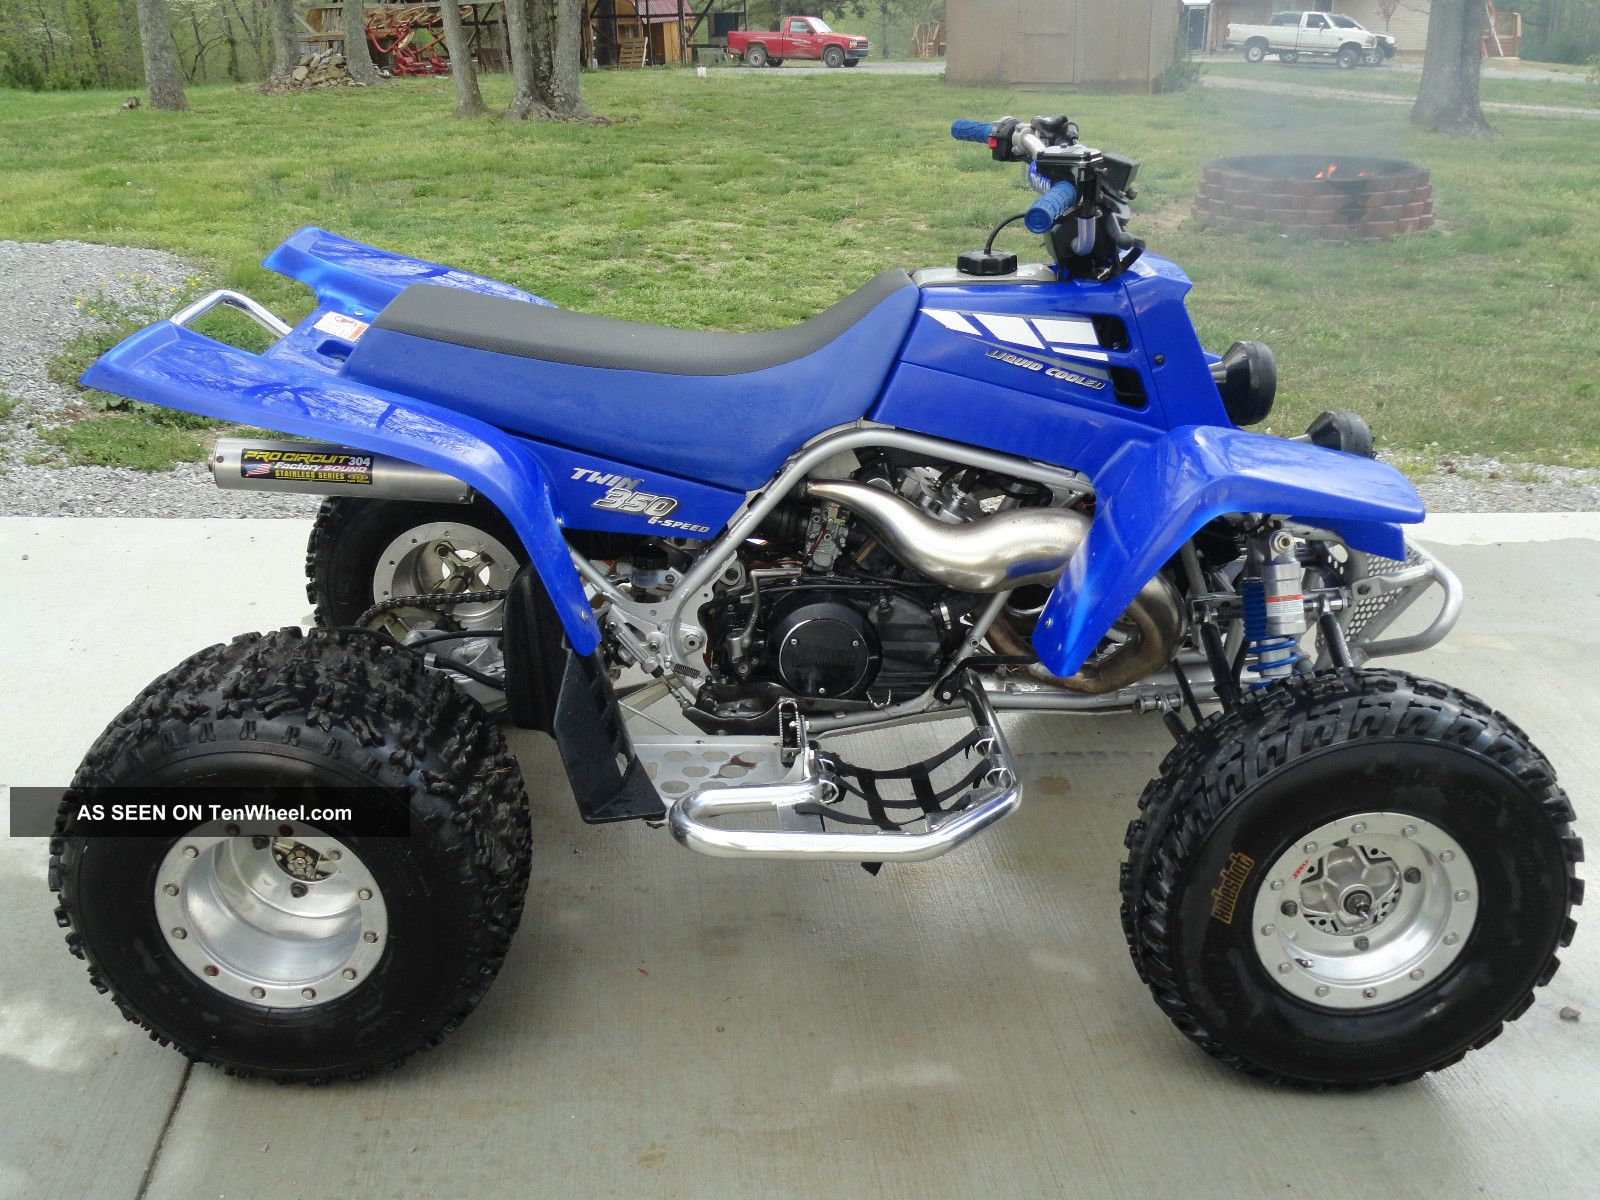 2014 Yamaha Banshee Autos Post